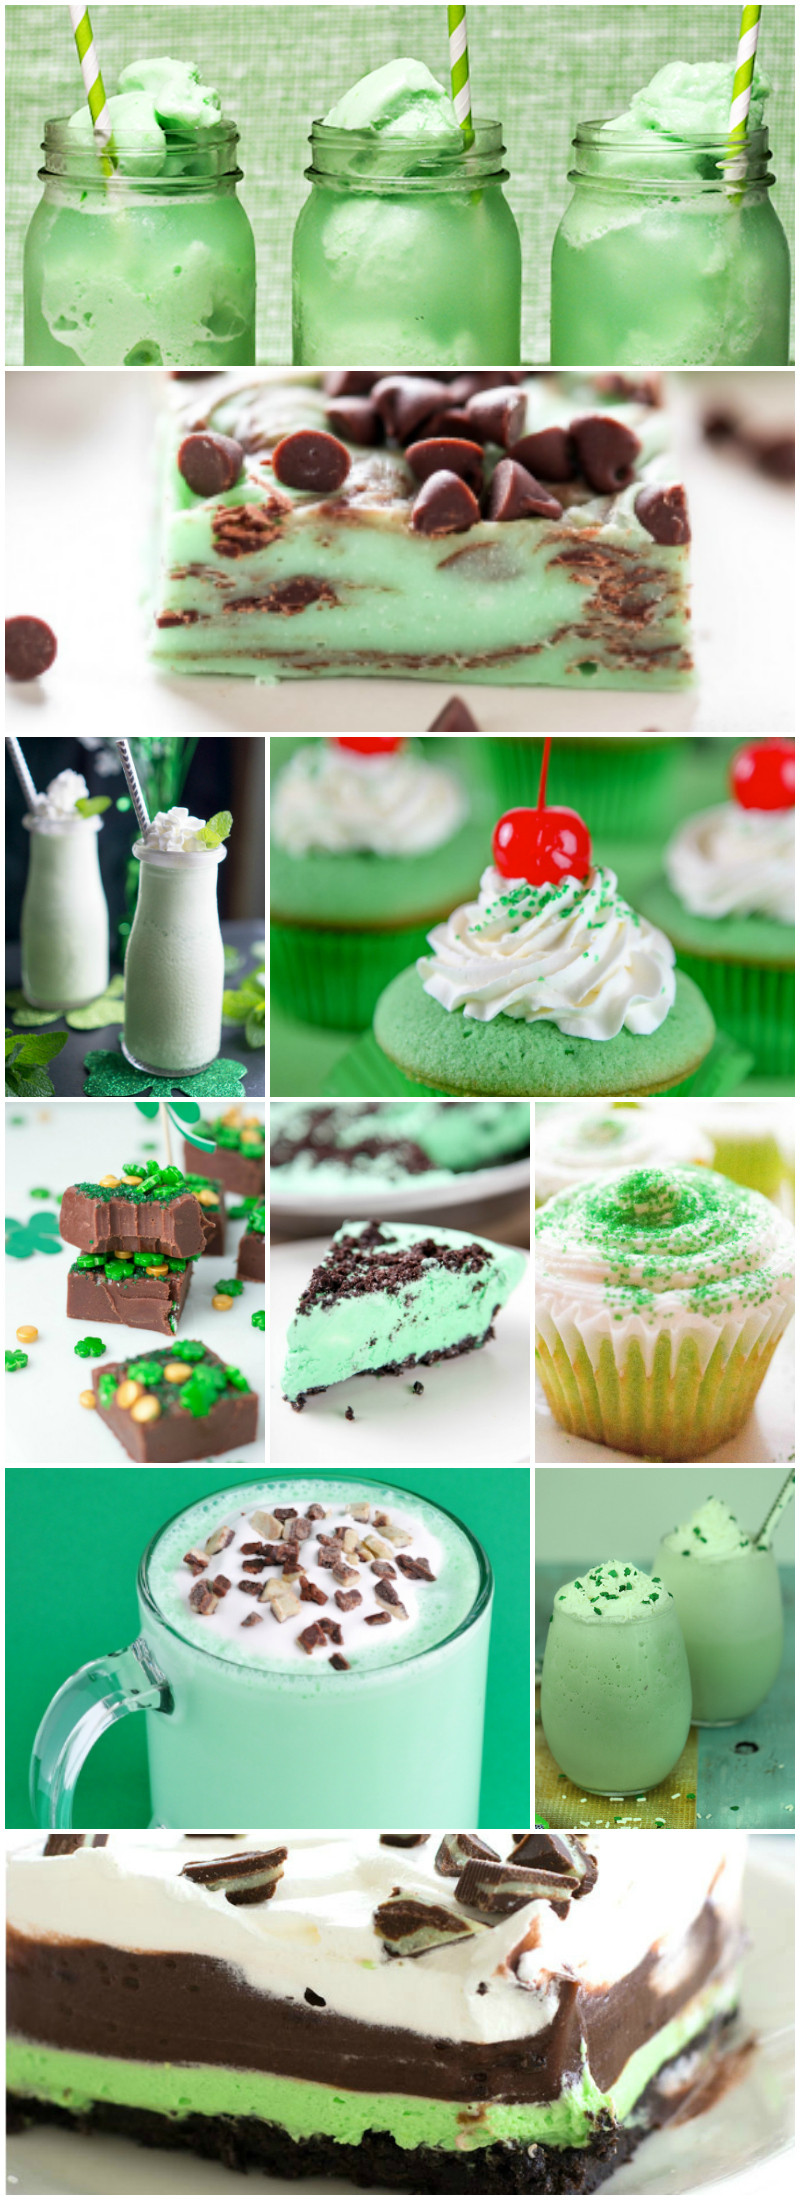 Green Desserts For St Patrick'S Day  21 Green Desserts for St Patrick's Day